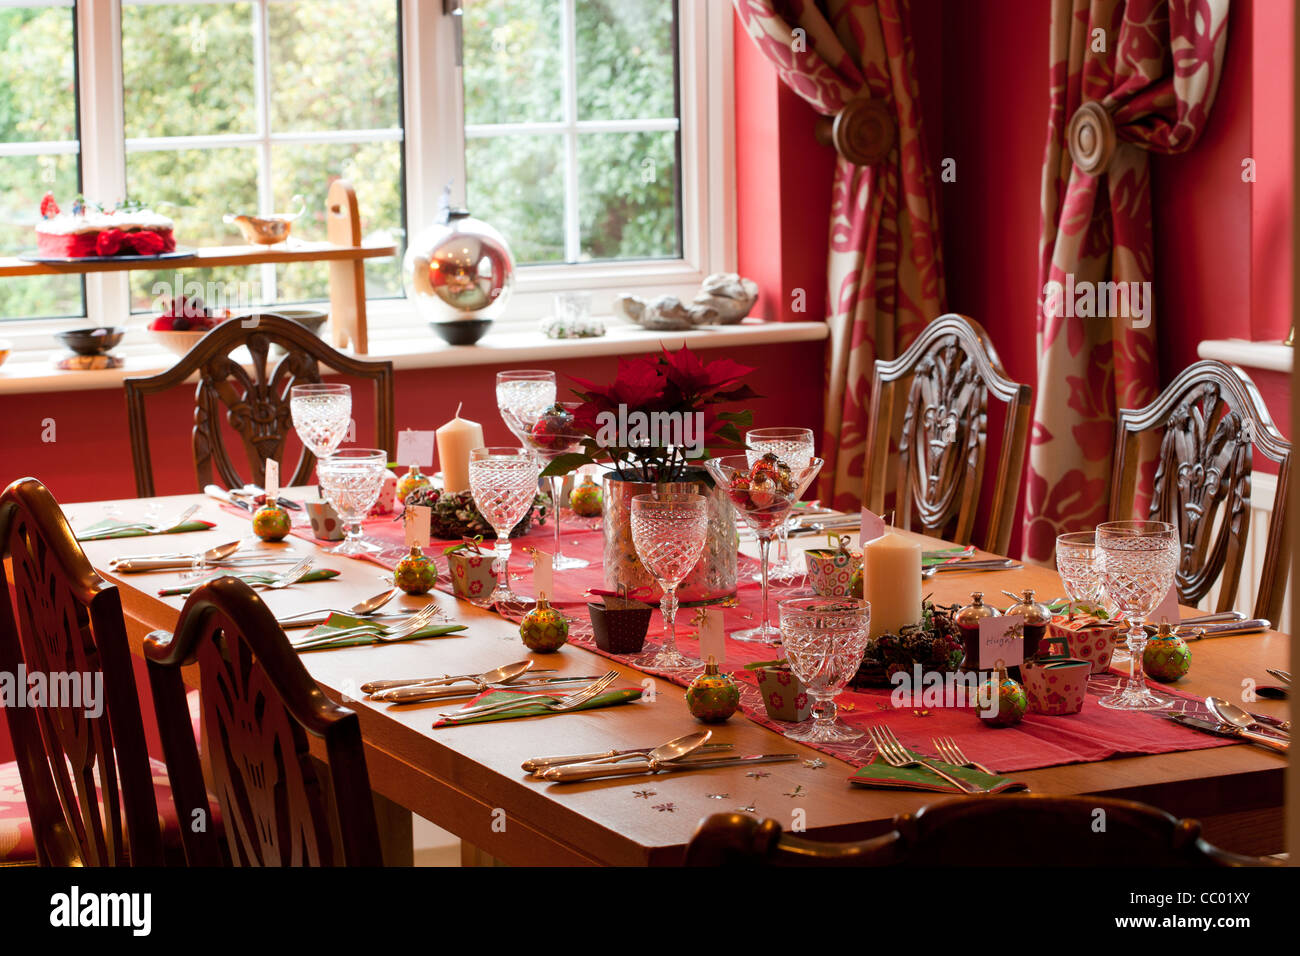 Dining table at Christmas - Stock Image